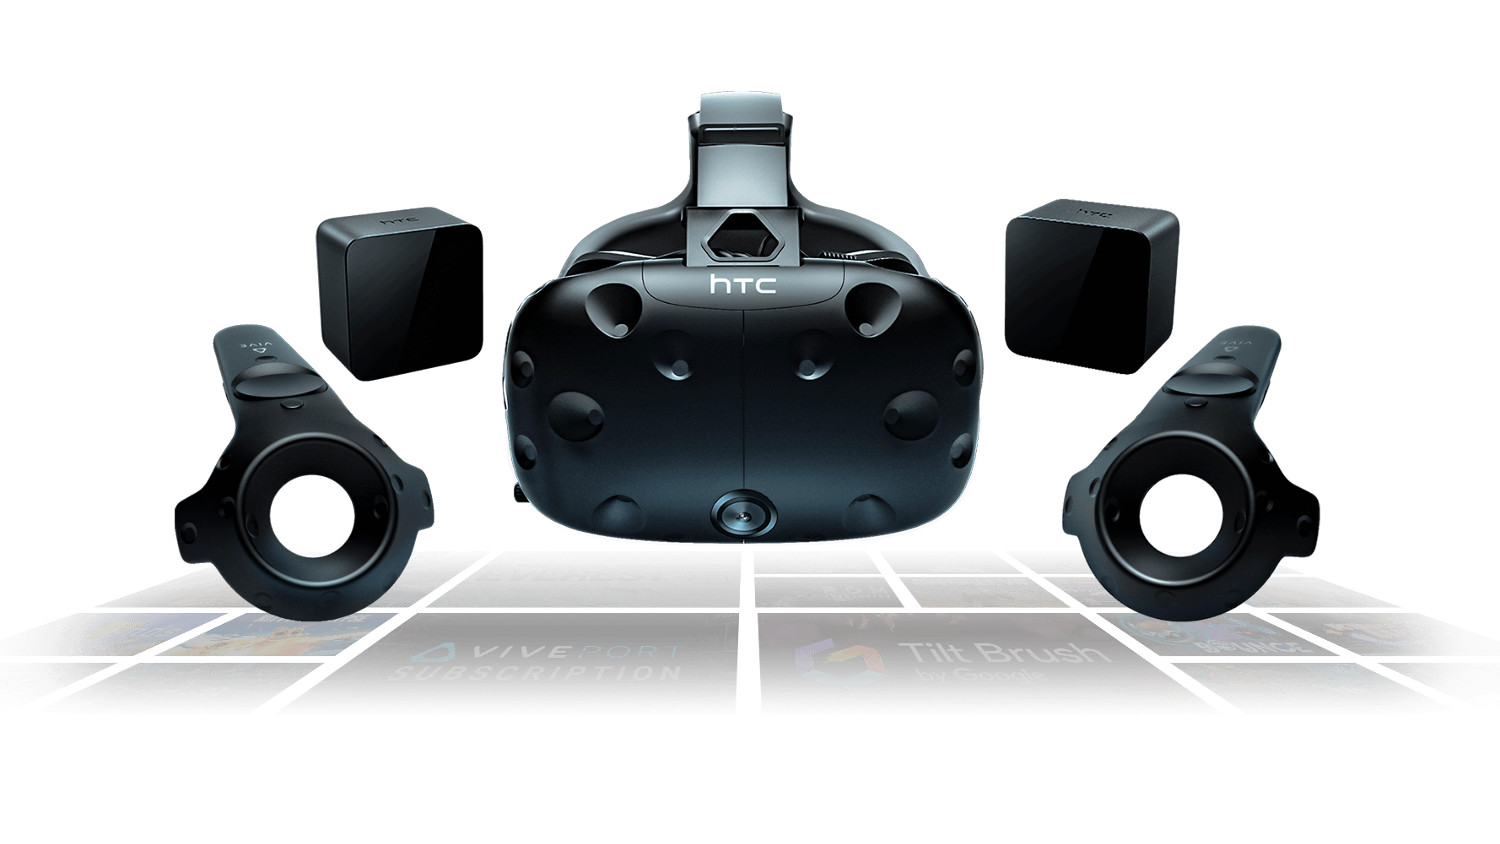 How to set up a HTC Vive: follow these steps to get started with